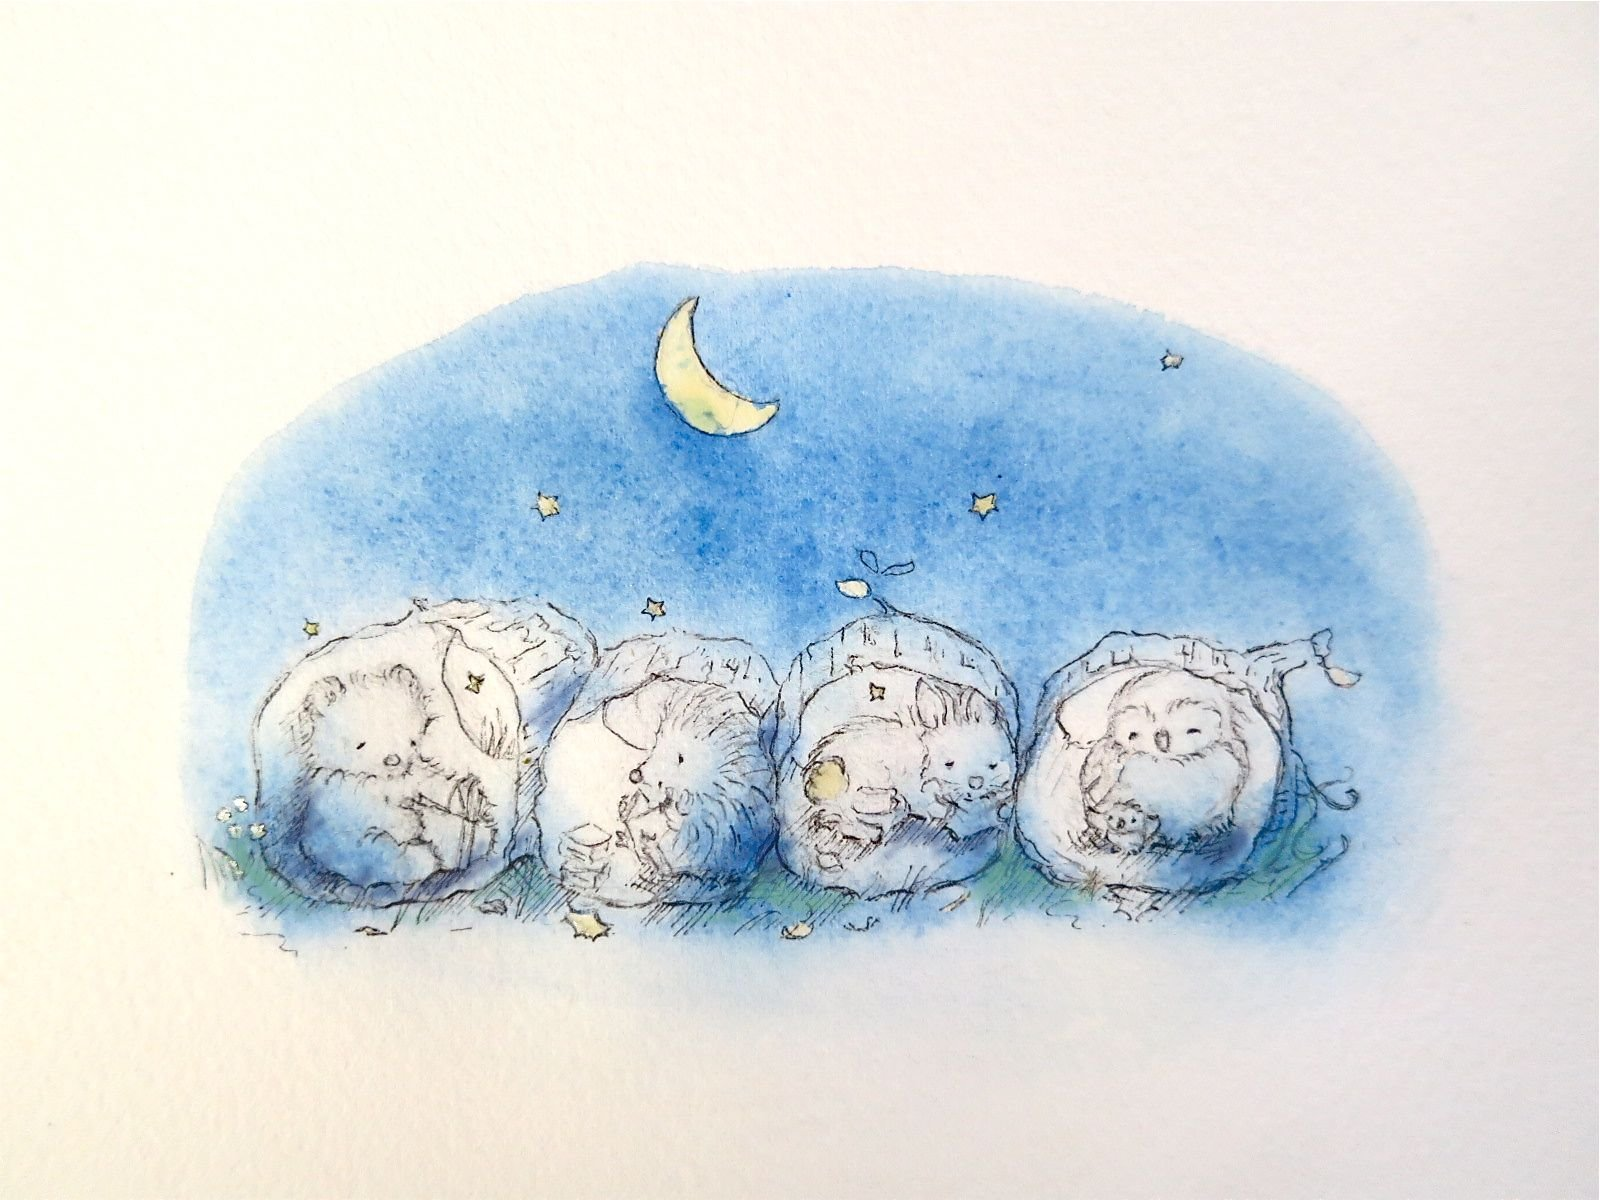 Painted illustration of sleeping baby animals